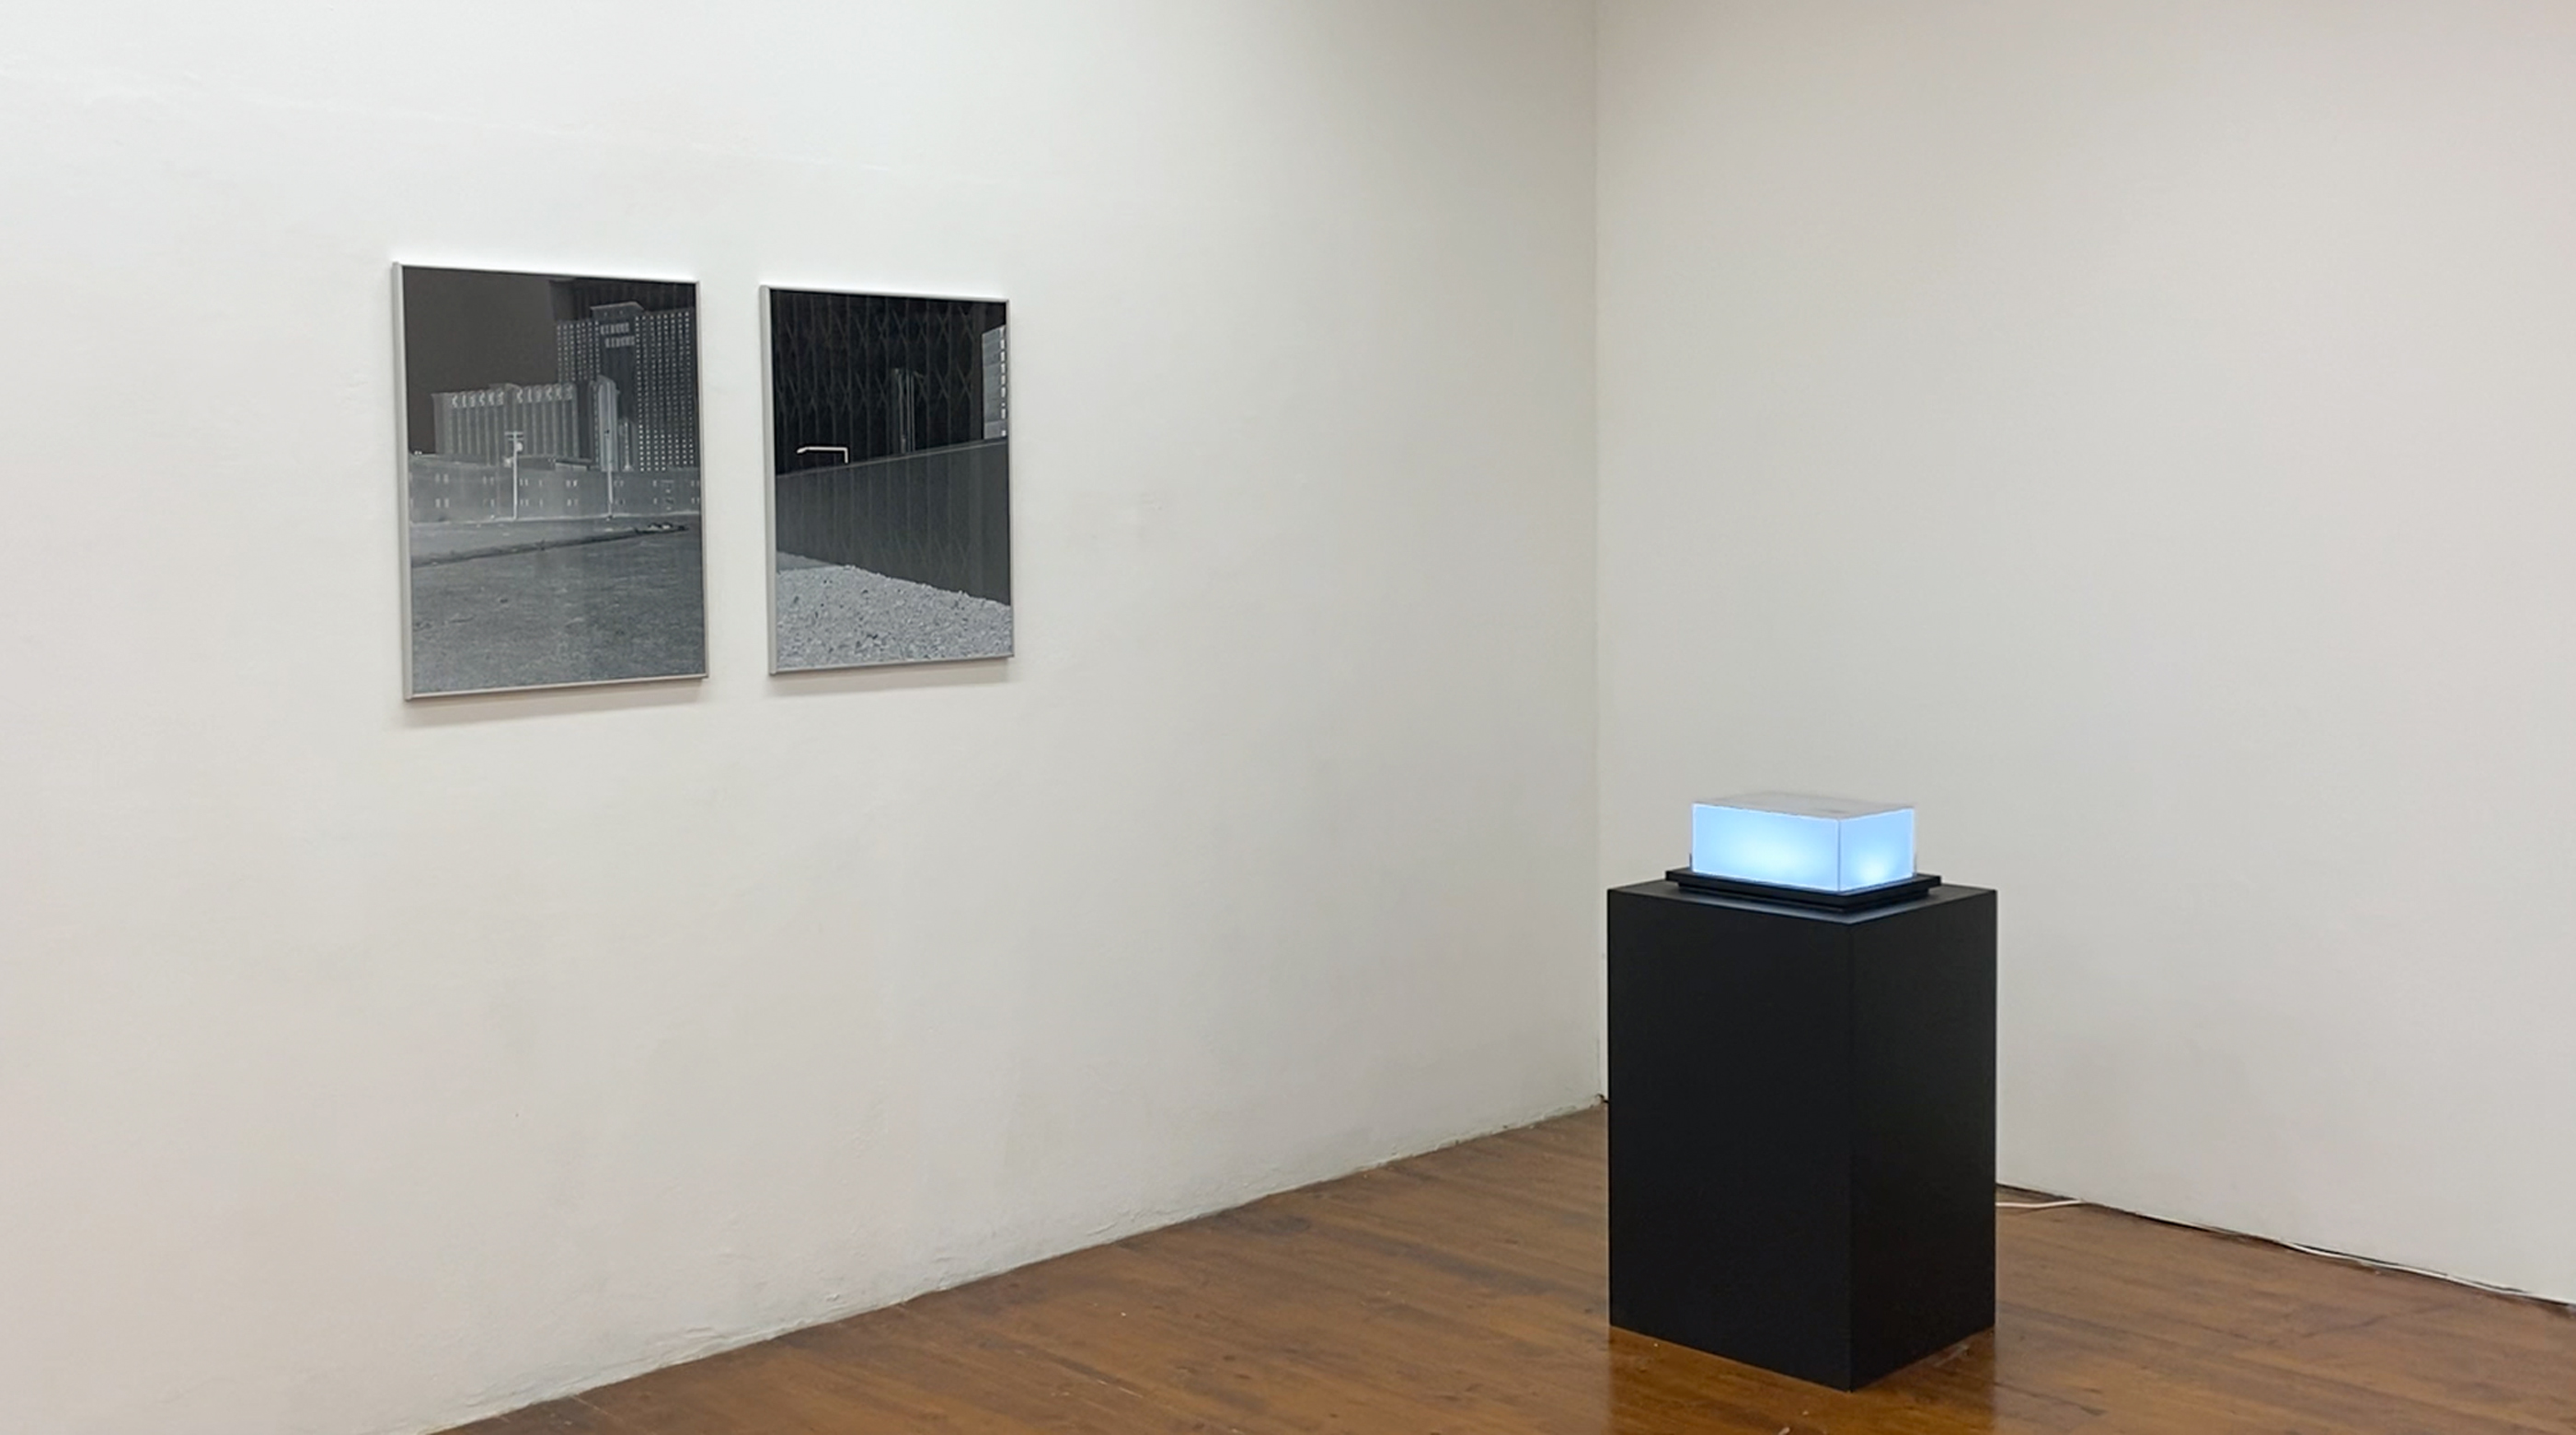 Alberto Sinigaglia, Microwave City: the Cloud Series (installation view)